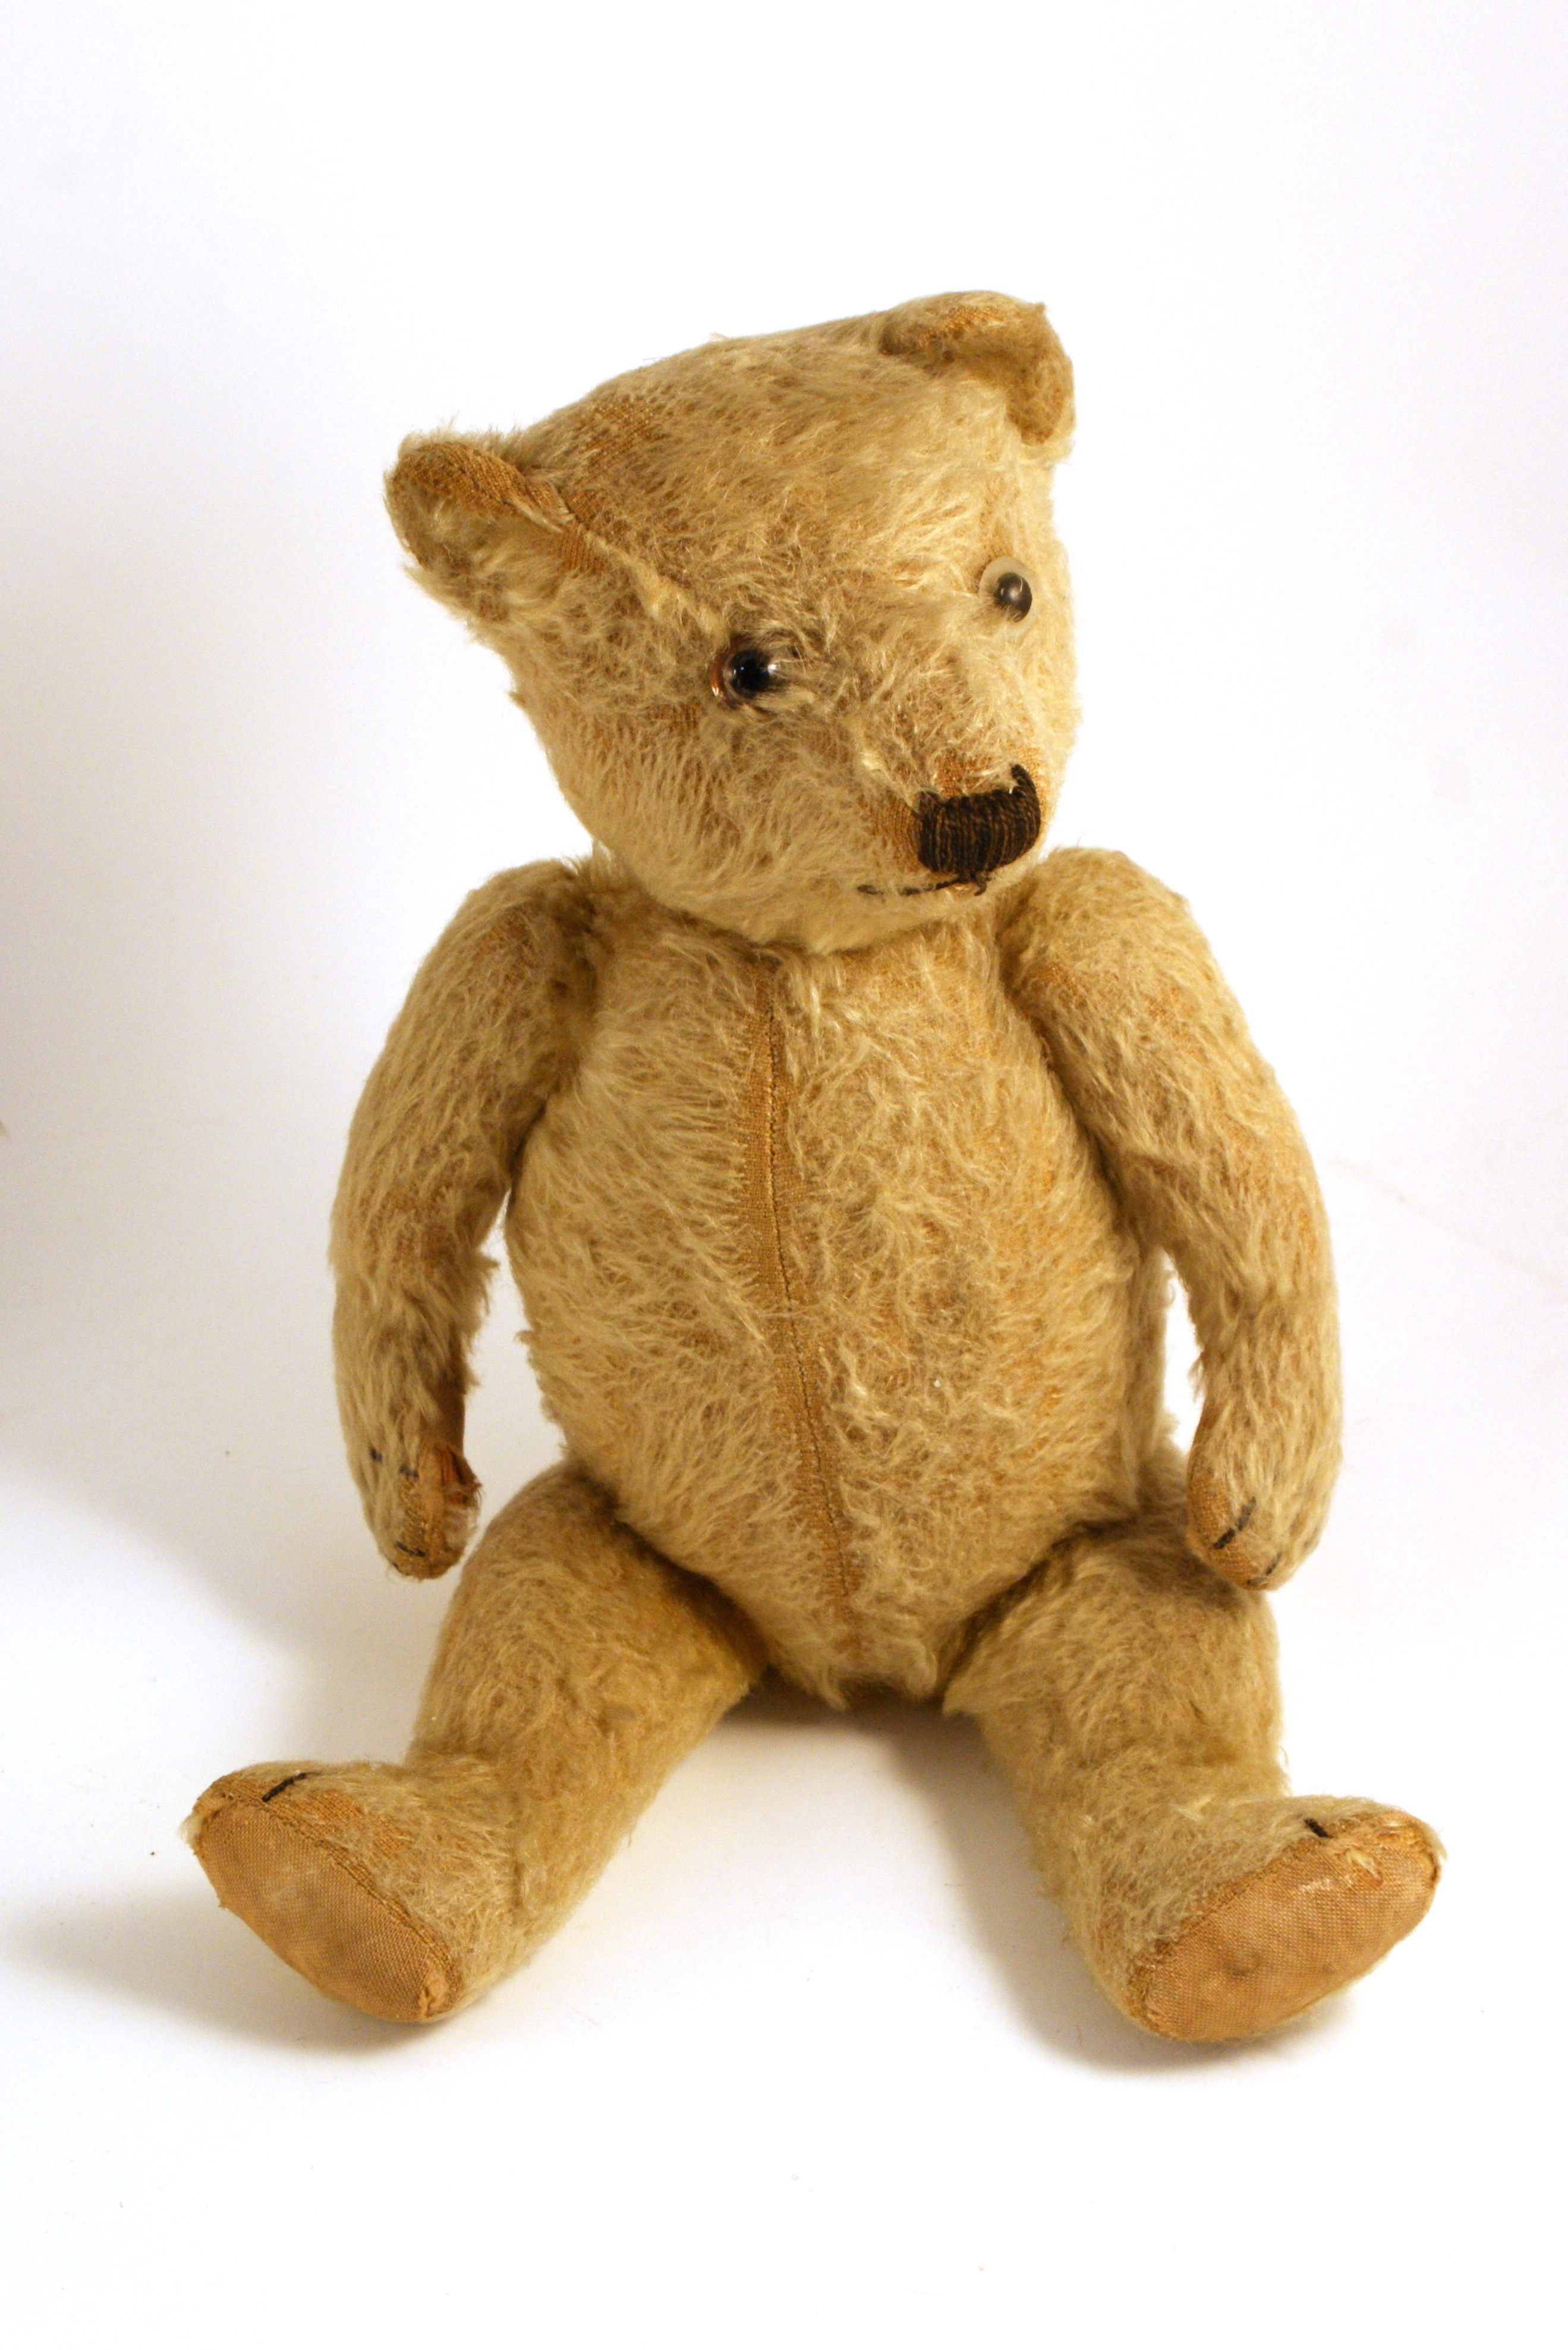 Jointed pale yellow teddy bear with seam down its belly.  It looks well loved.